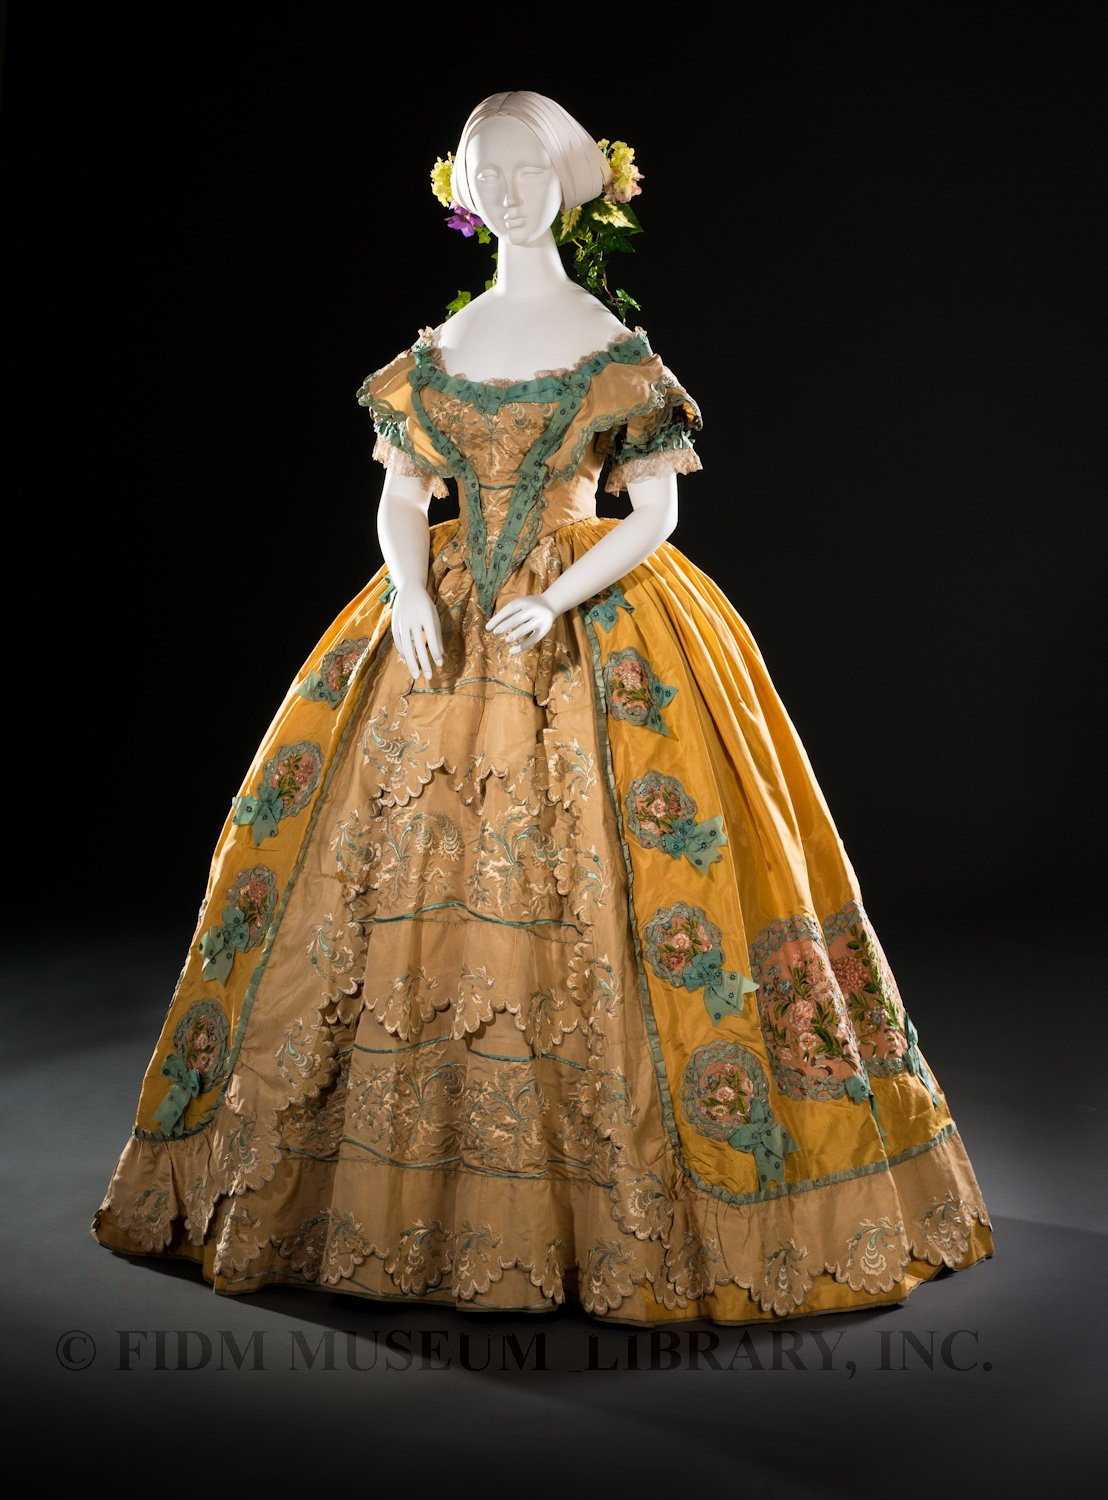 Ball gown, American, c. 1852. Helen Larson Historic Fashion Collection via FIDM